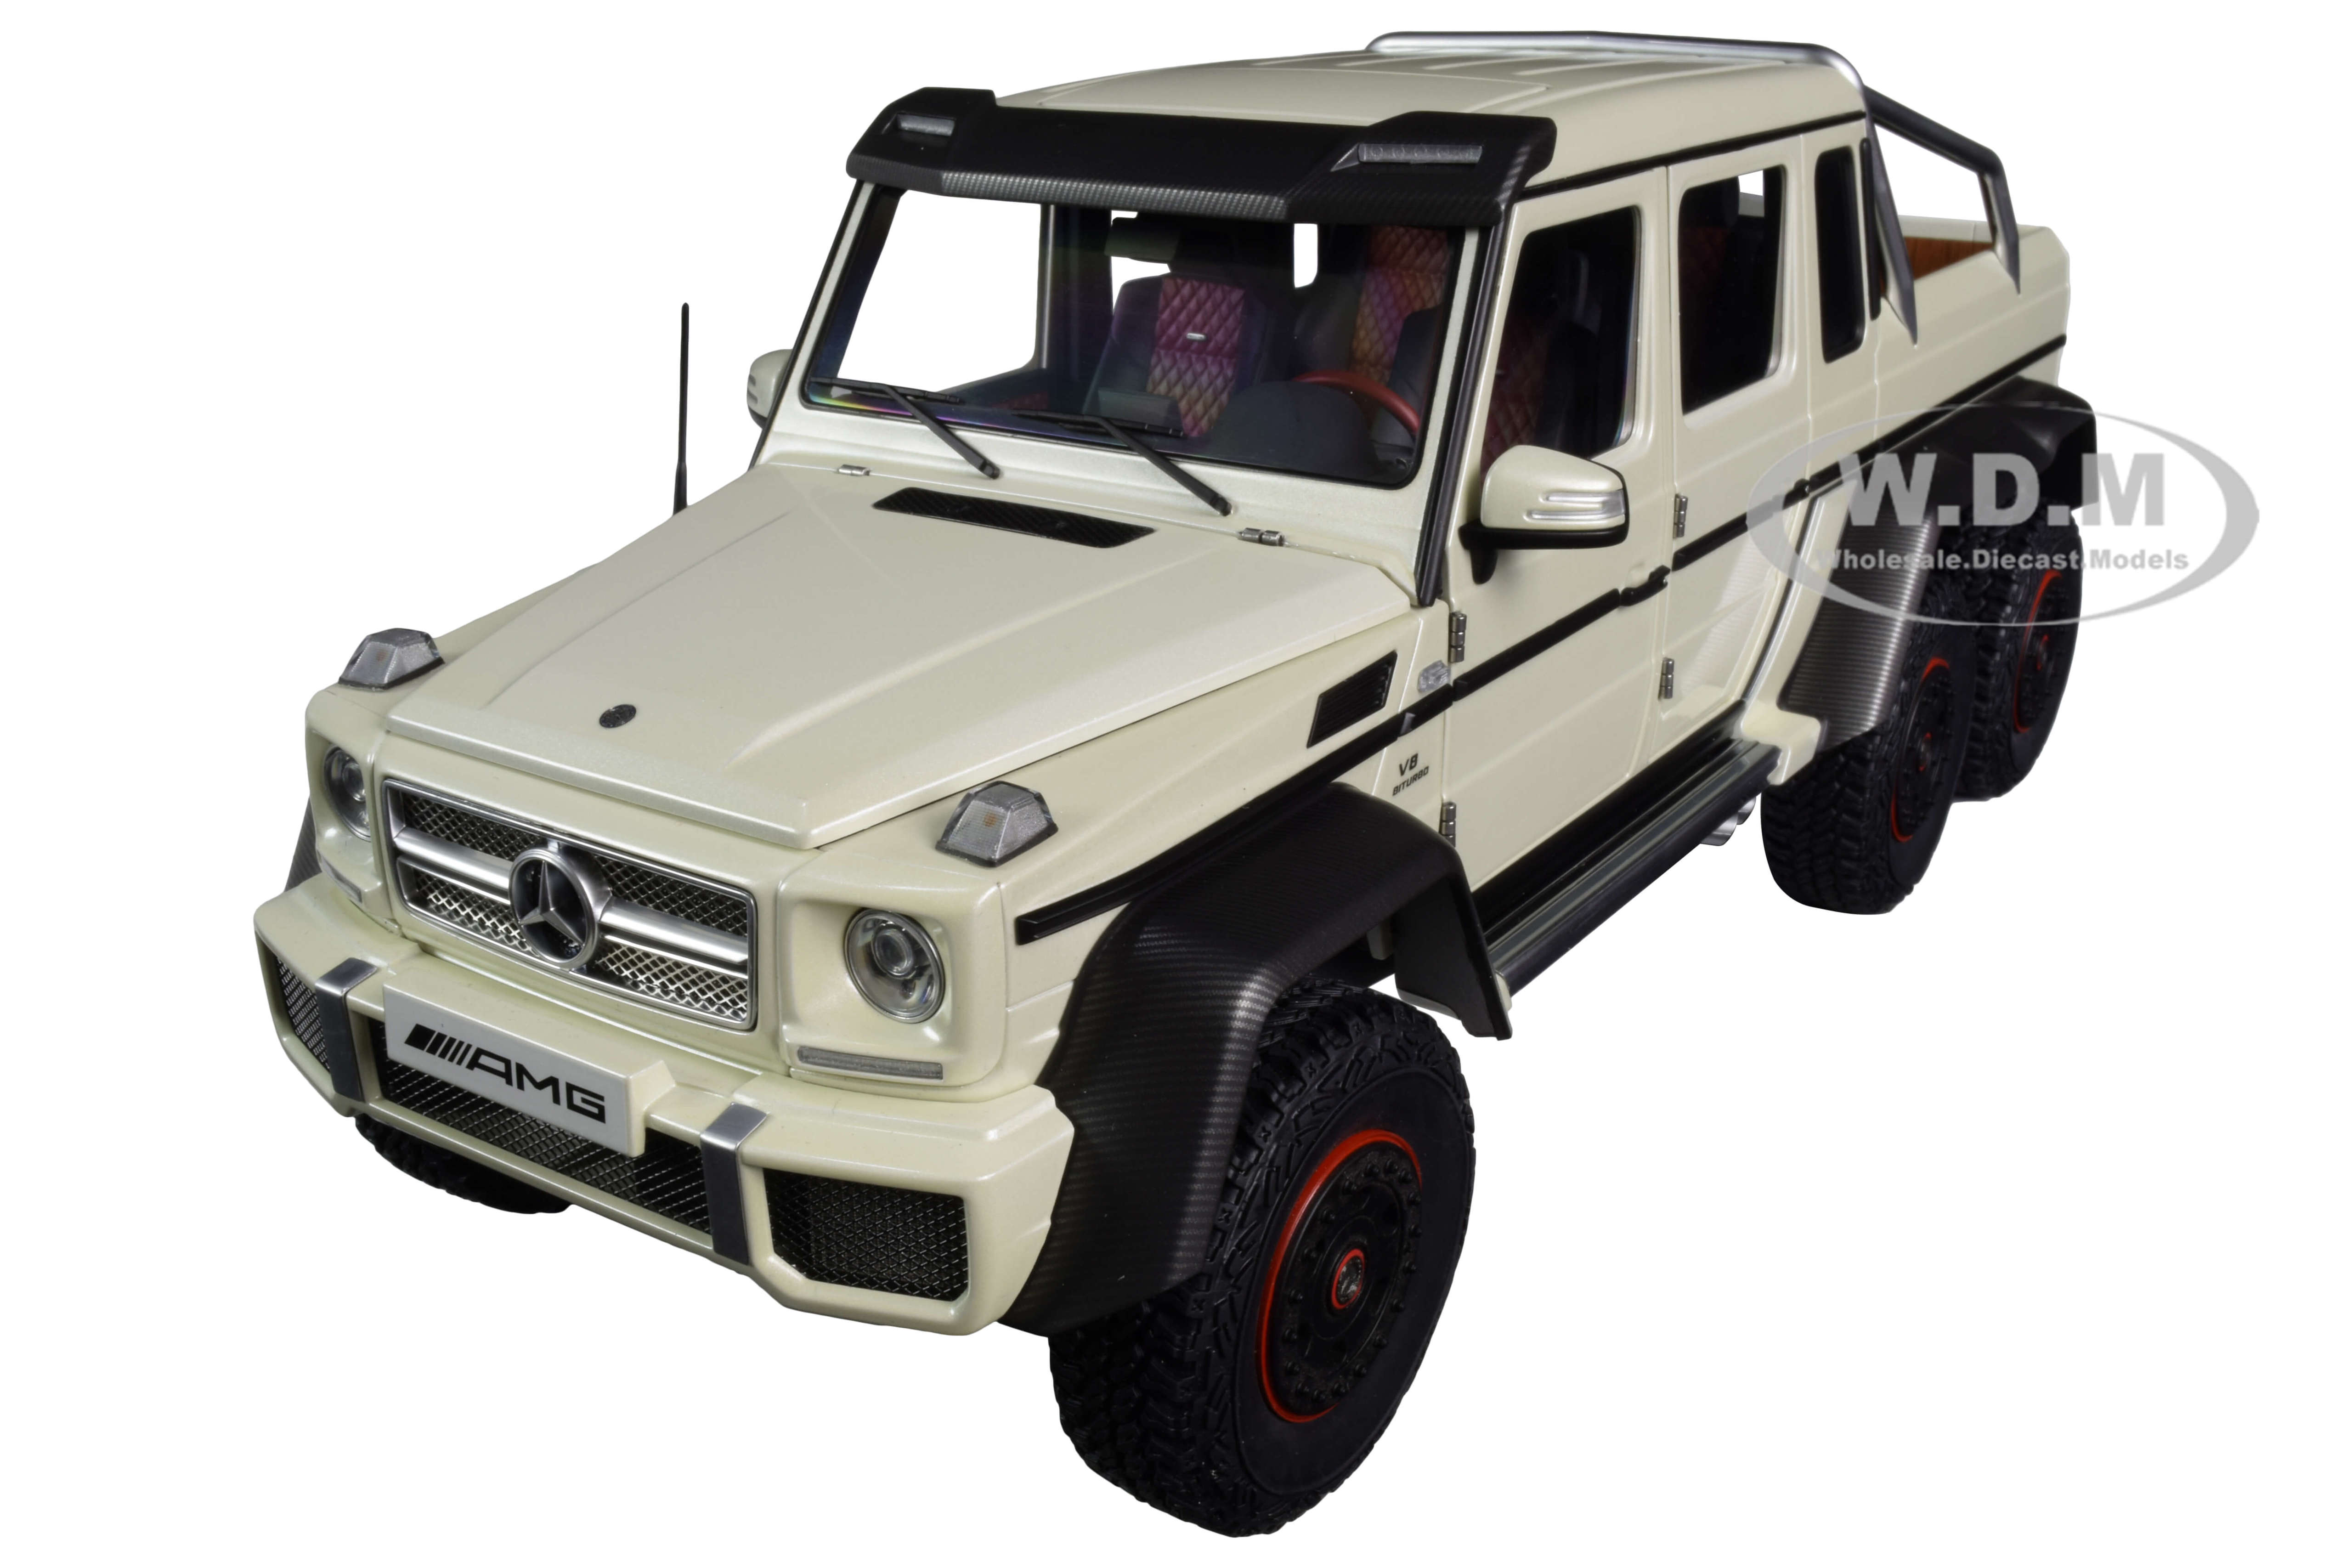 Mercedes Benz G63 AMG 6x6 Designo Diamond White with Carbon Accents 1/18 Model Car by Autoart